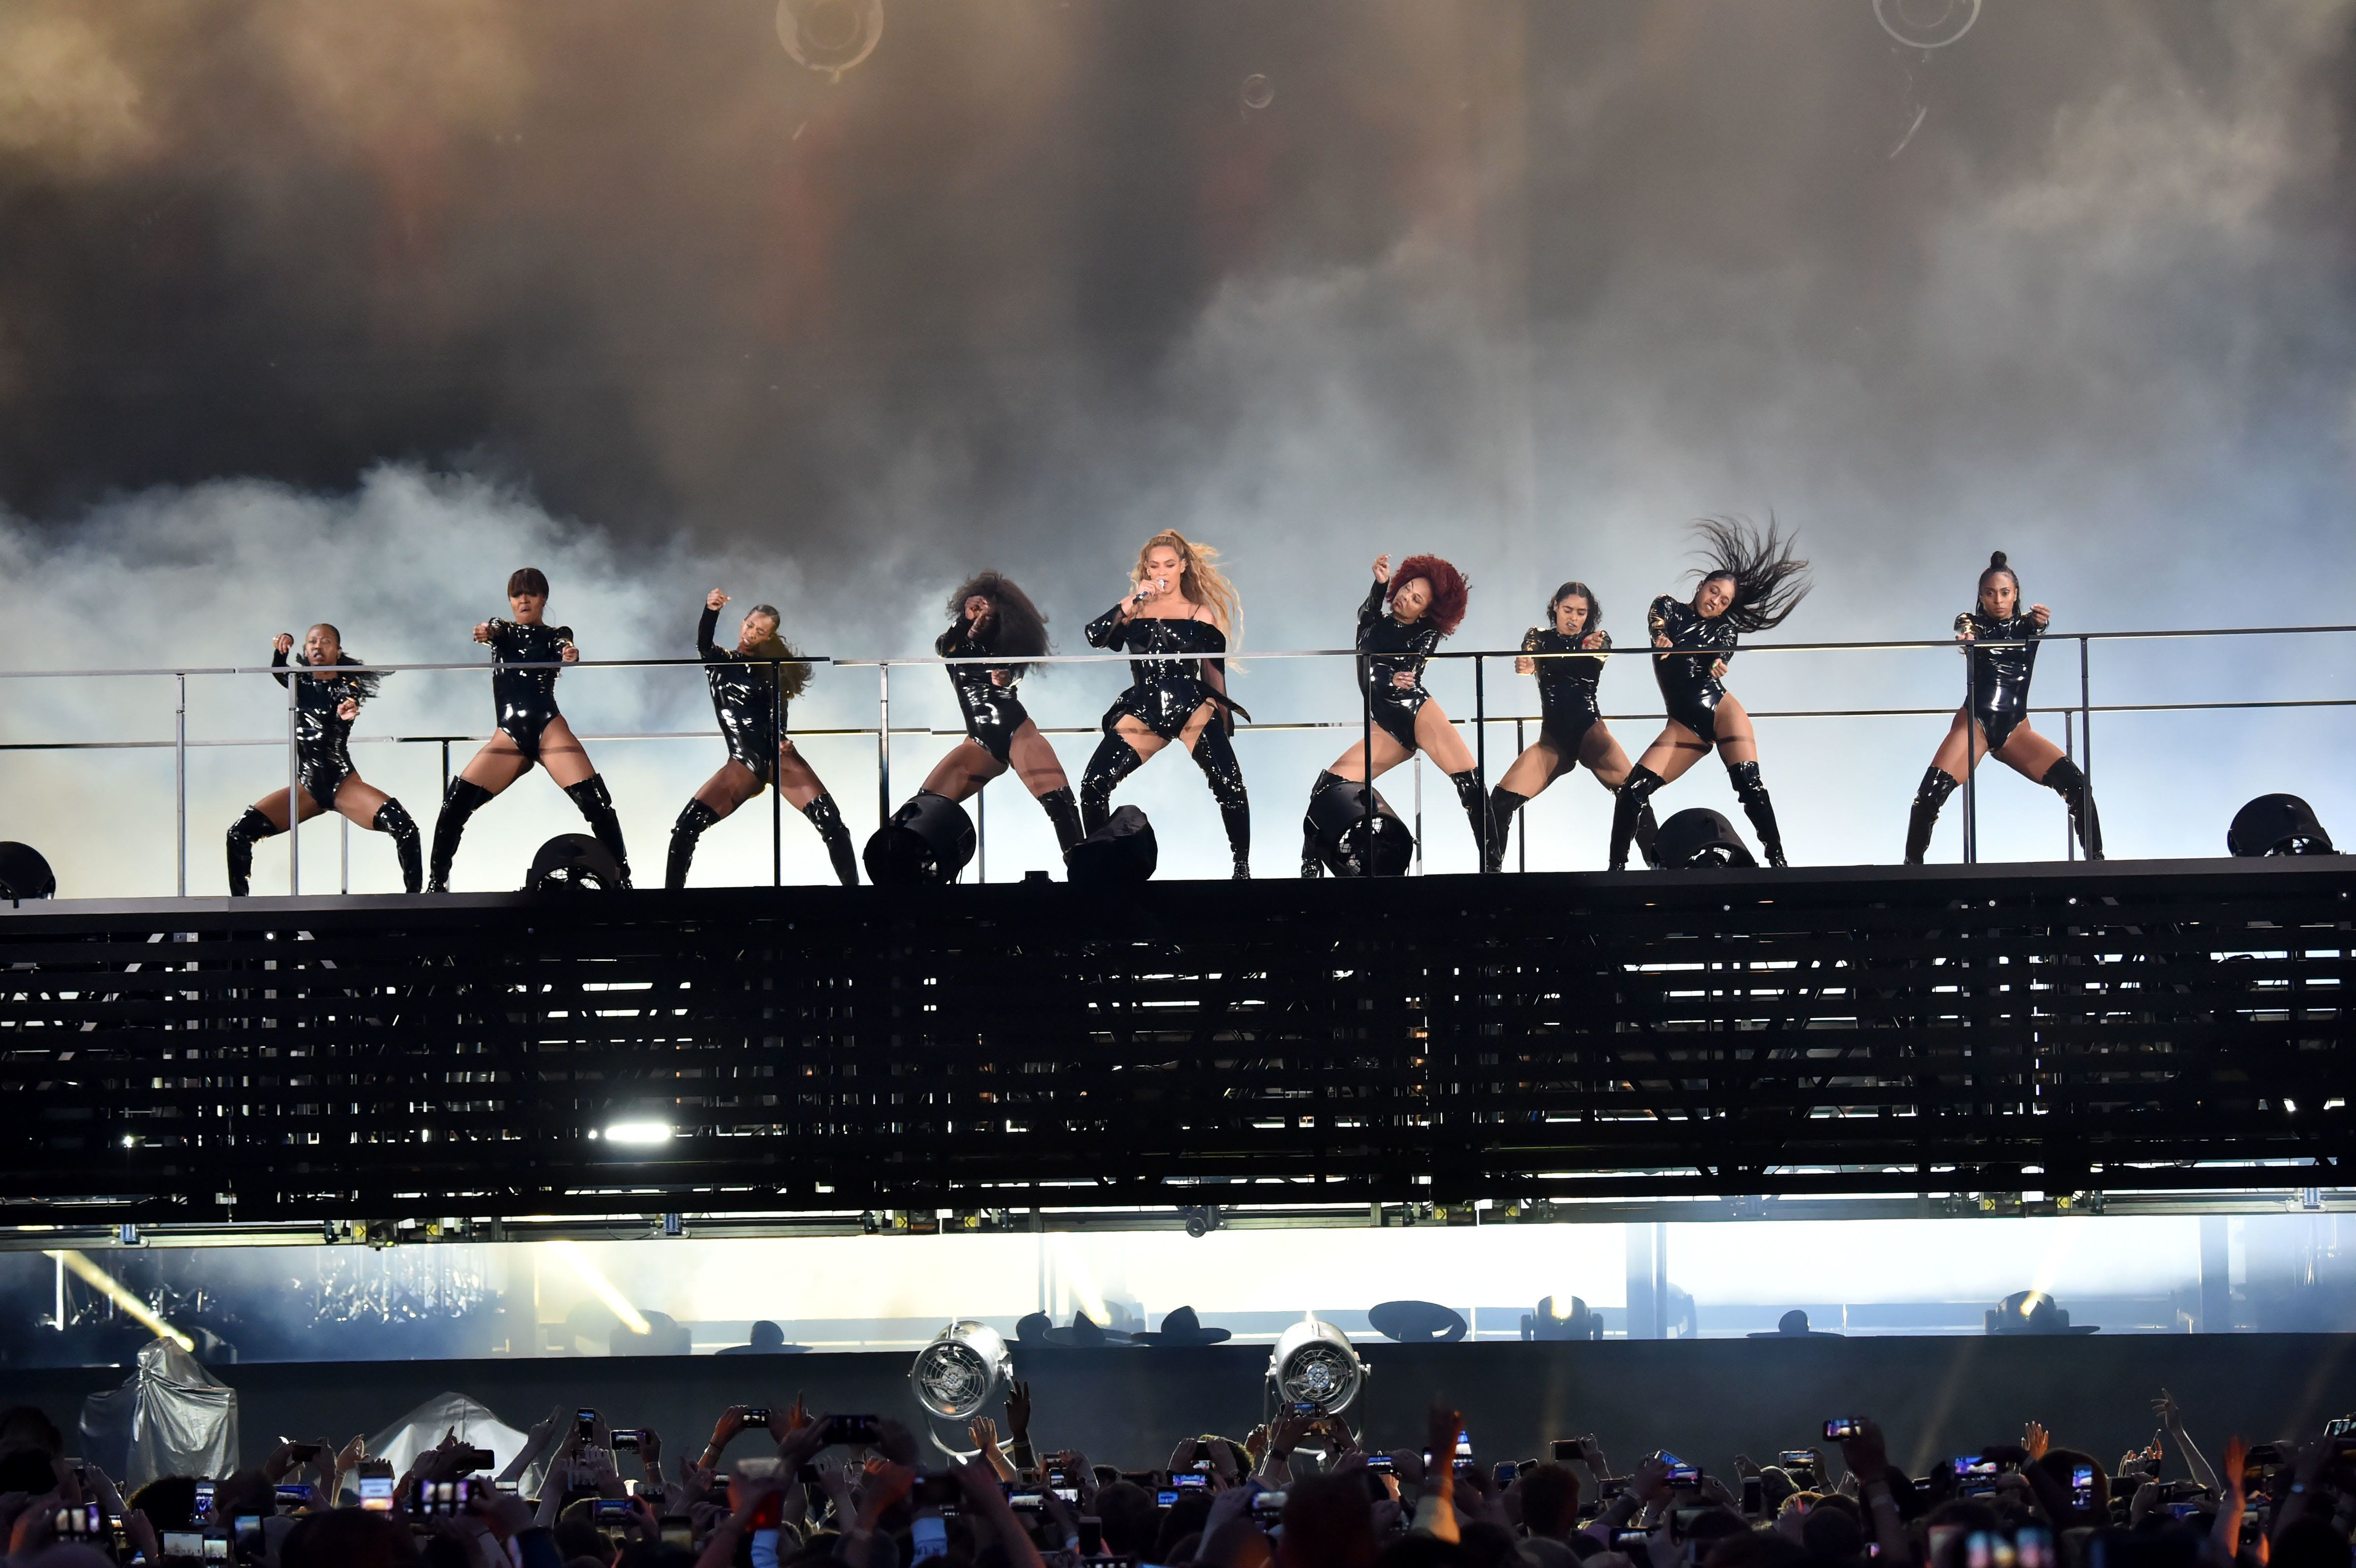 Beyoncé Closes 'On The Run II' Concert By Climbing Down On A Ladder After Stage